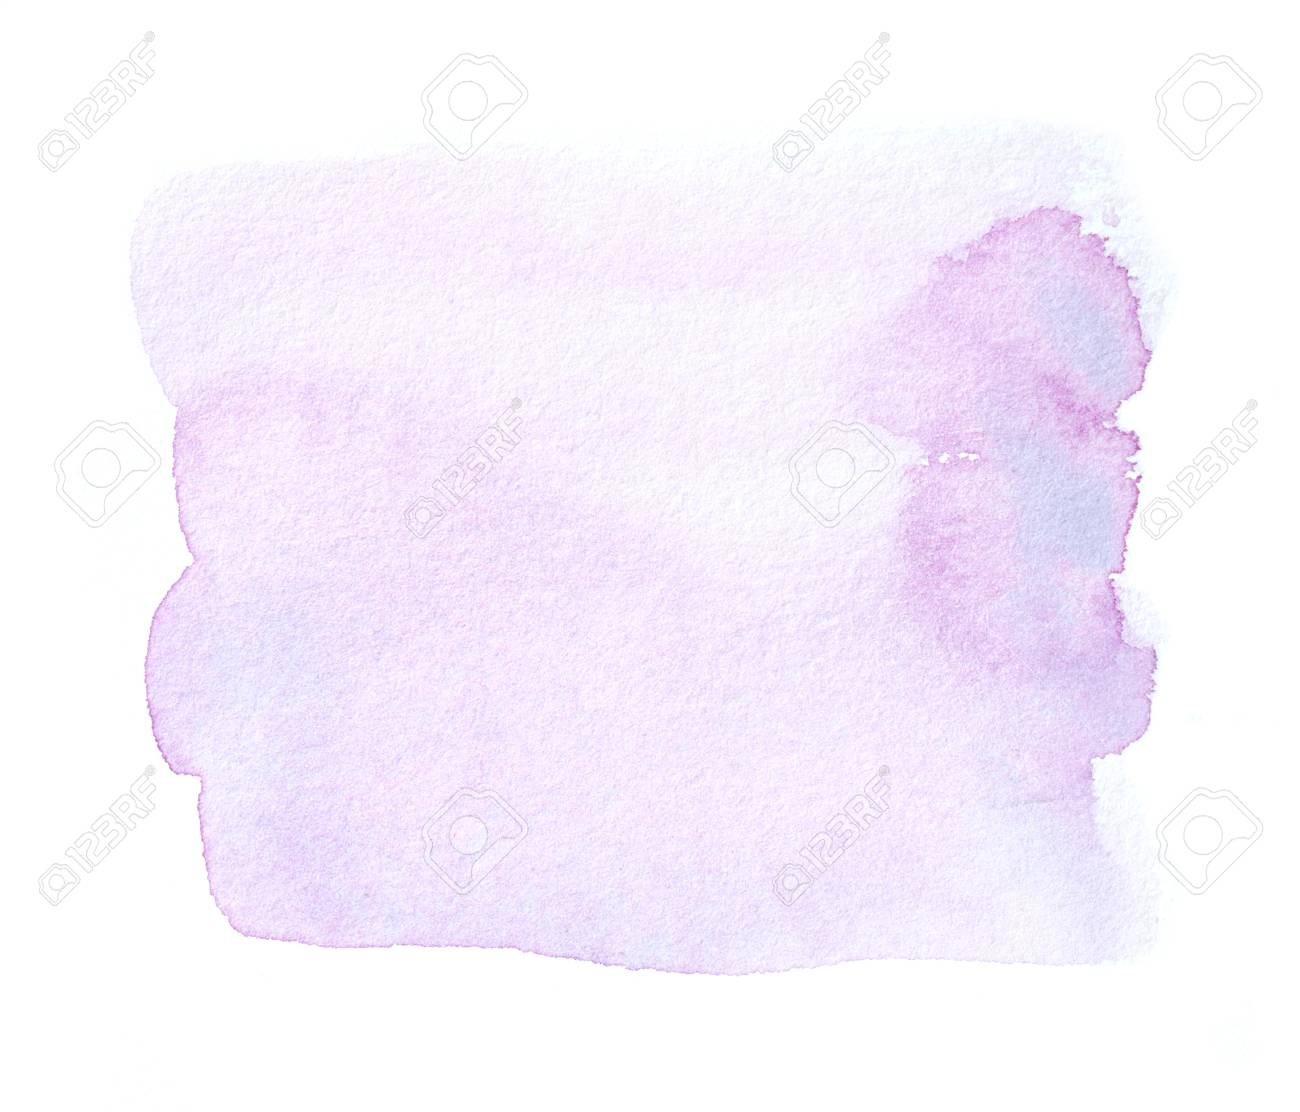 Abstract Soft Purple Watercolor Splash Isolated On White Background